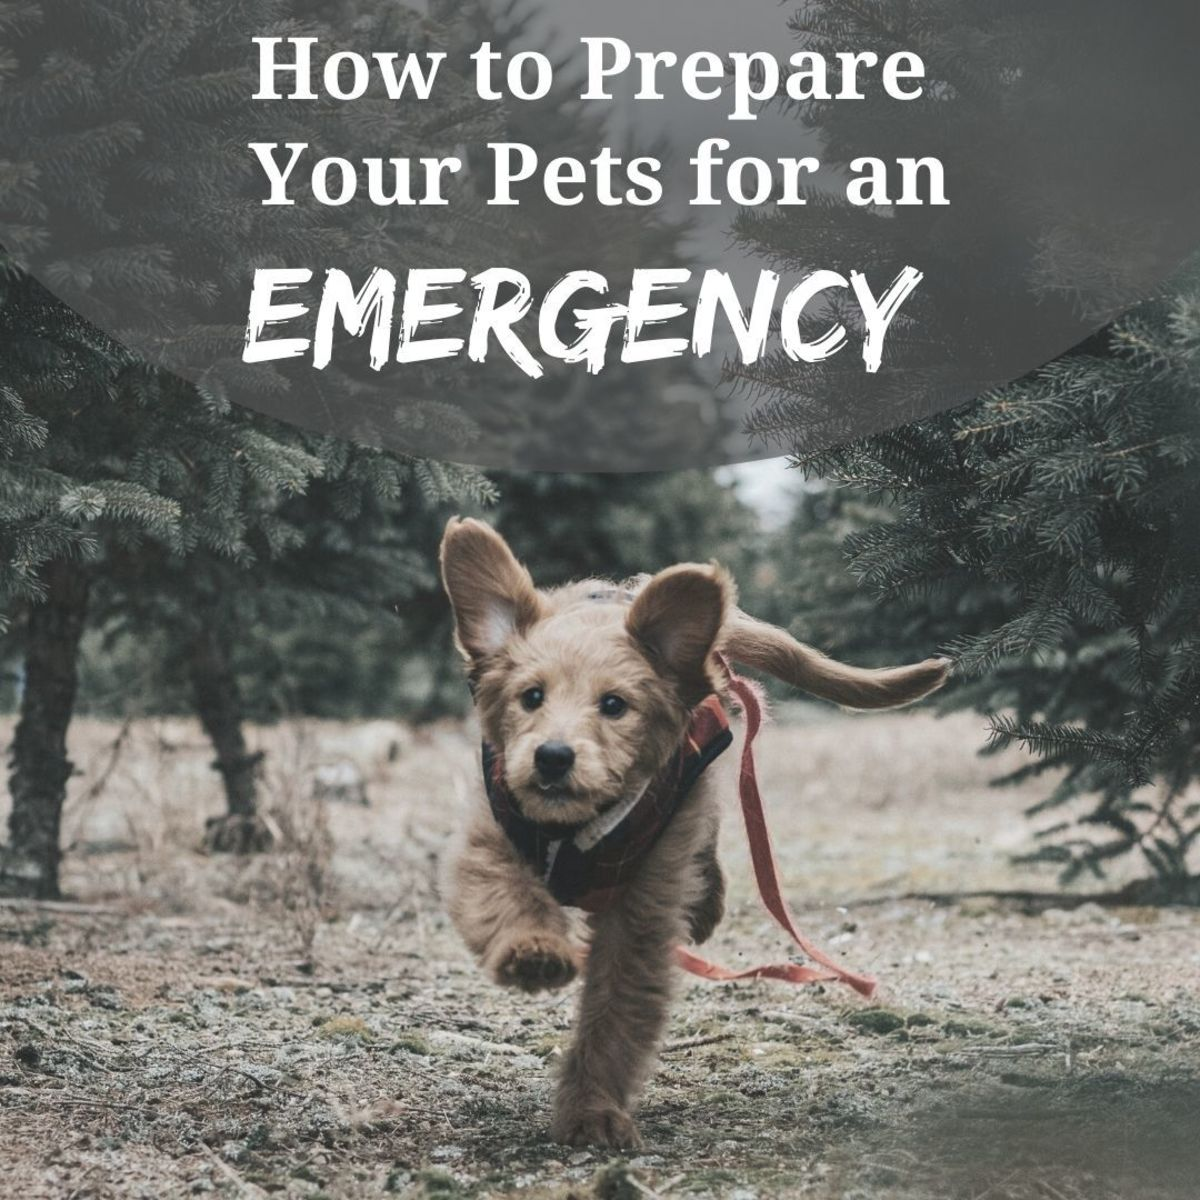 How to Train Your Pets for an Emergency